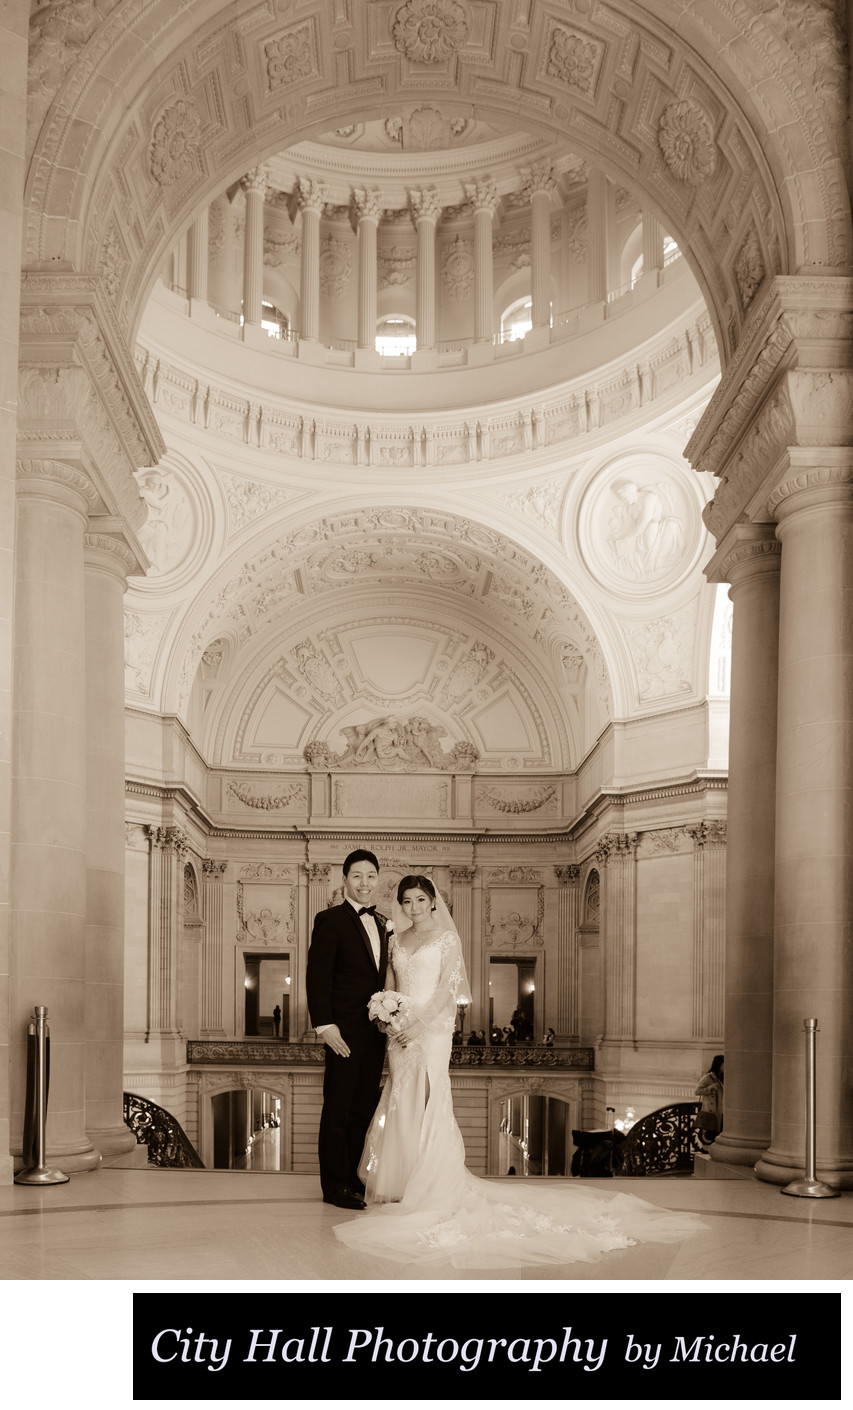 Asian wedding at San Francisco City Hall in Sepia